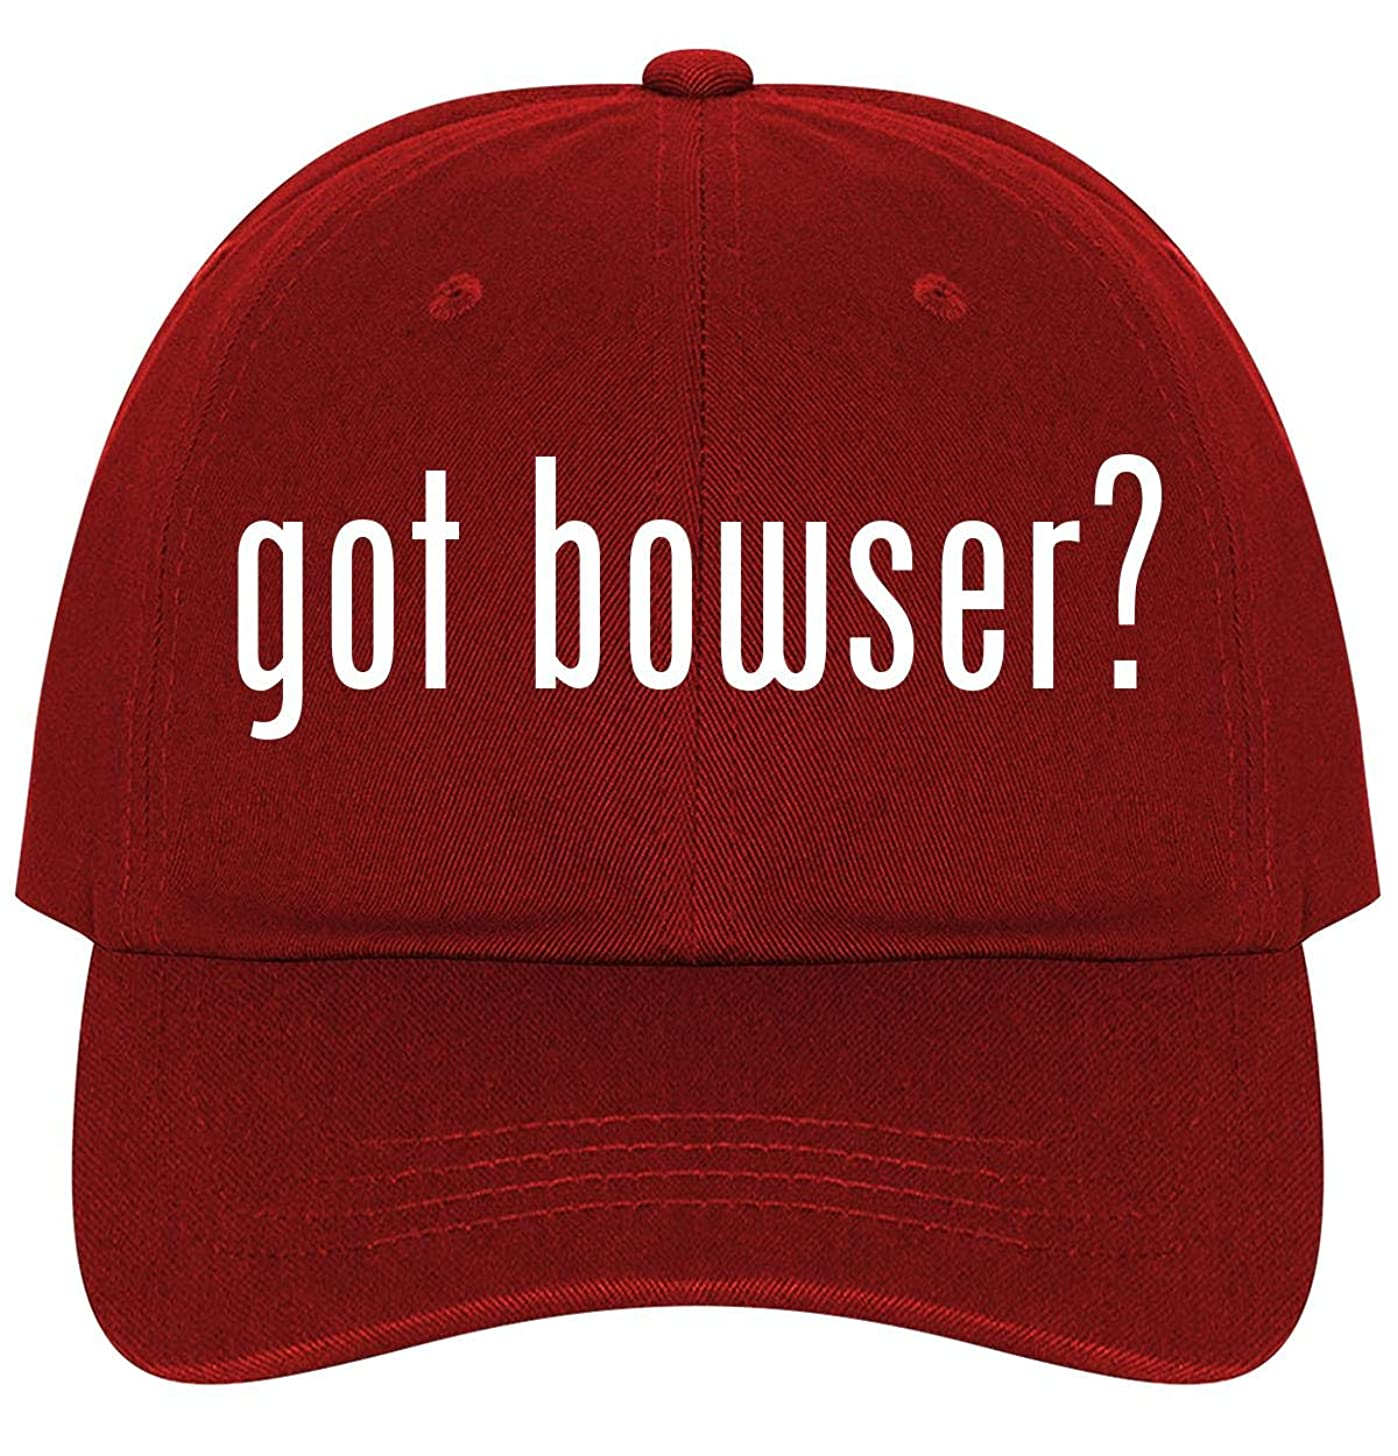 The Town Butler got Bowser? - A Nice Comfortable Adjustable Dad Hat Cap